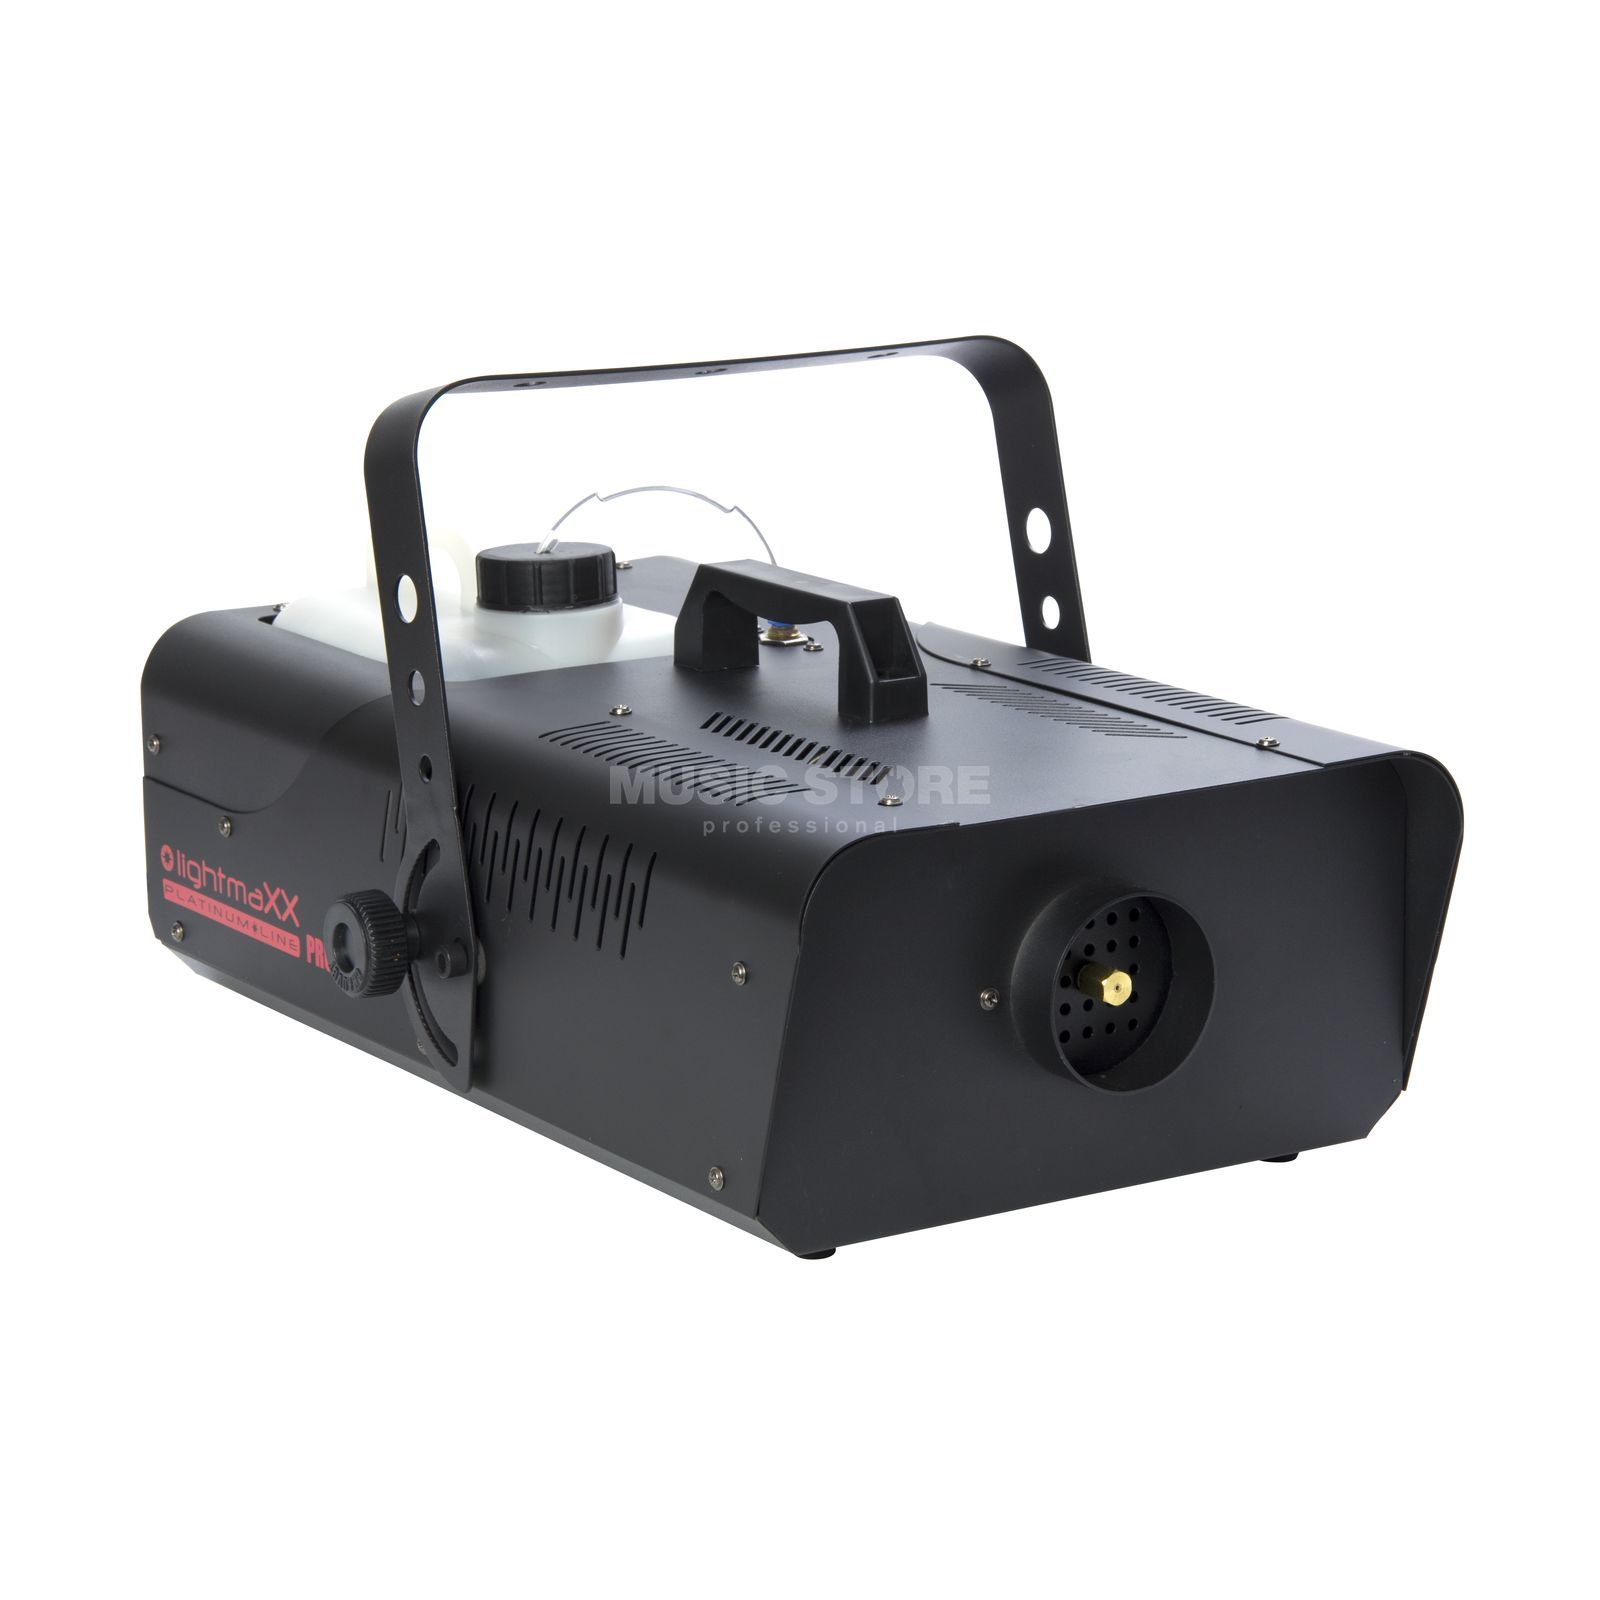 lightmaXX PRO FOG 1.5 incl. Wireless Remote Control Produktbillede